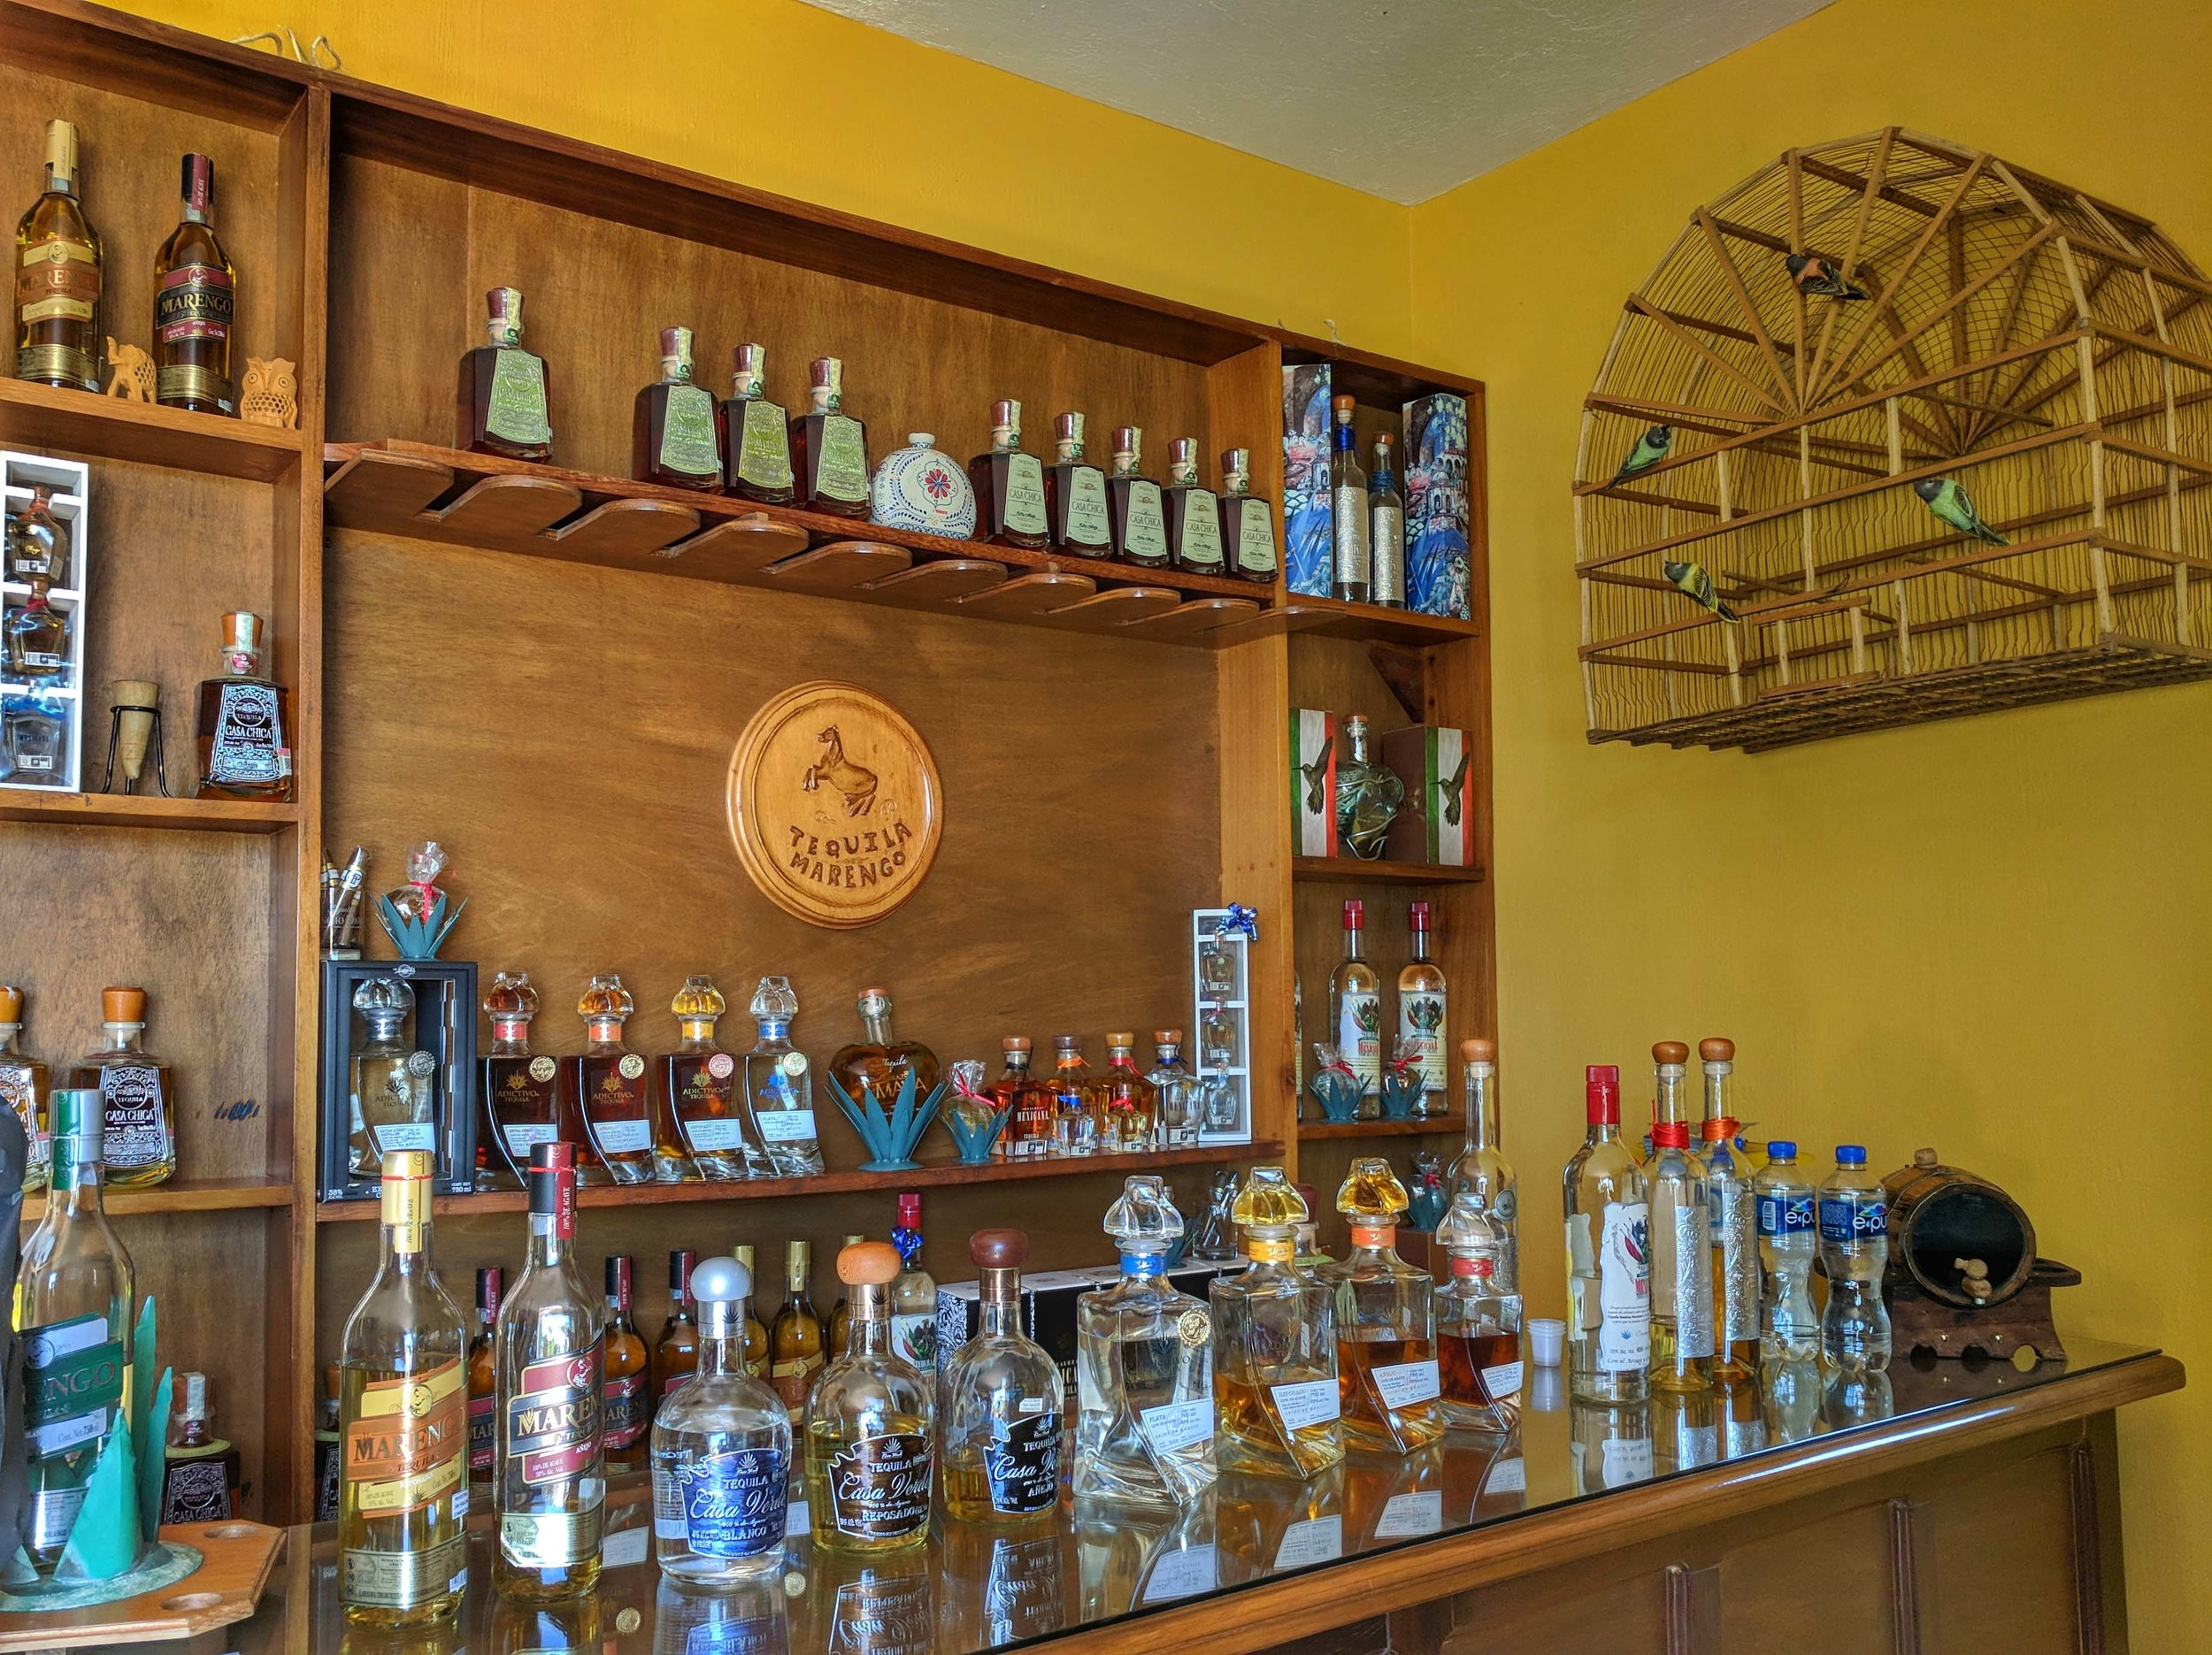 Delicious tequila to try at Casa Marengo